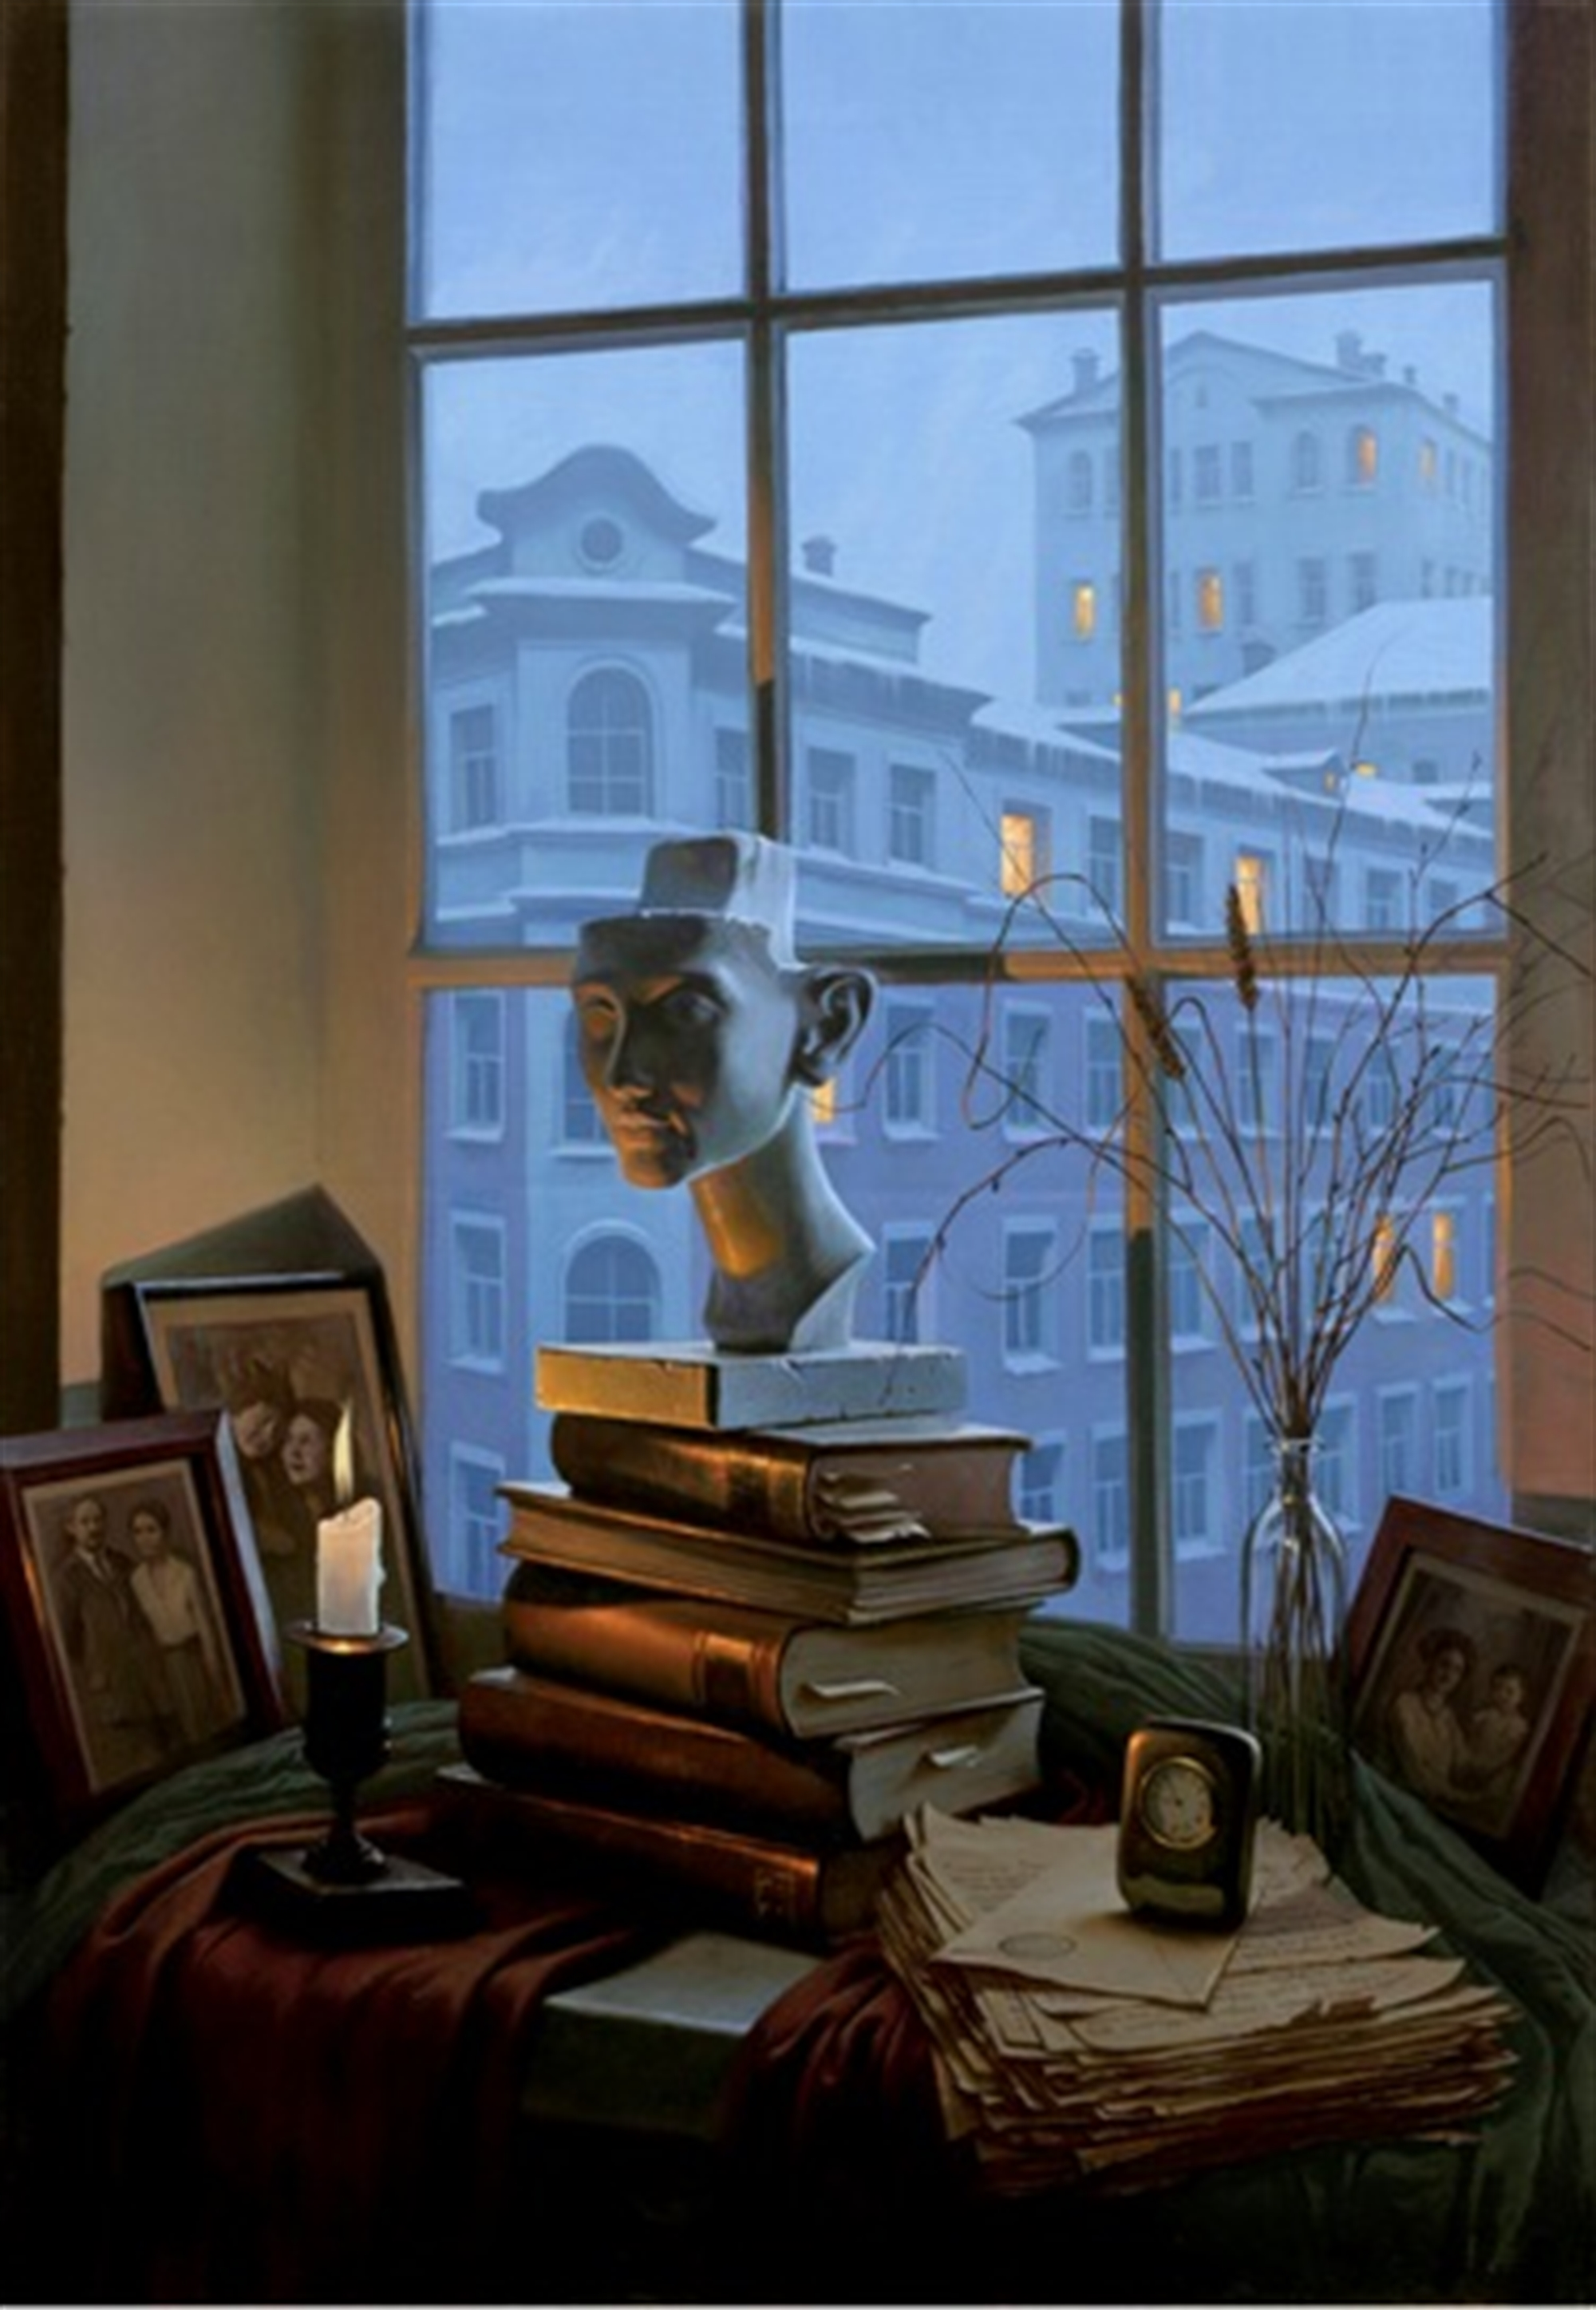 A Room With a View by Alexei Butirskiy